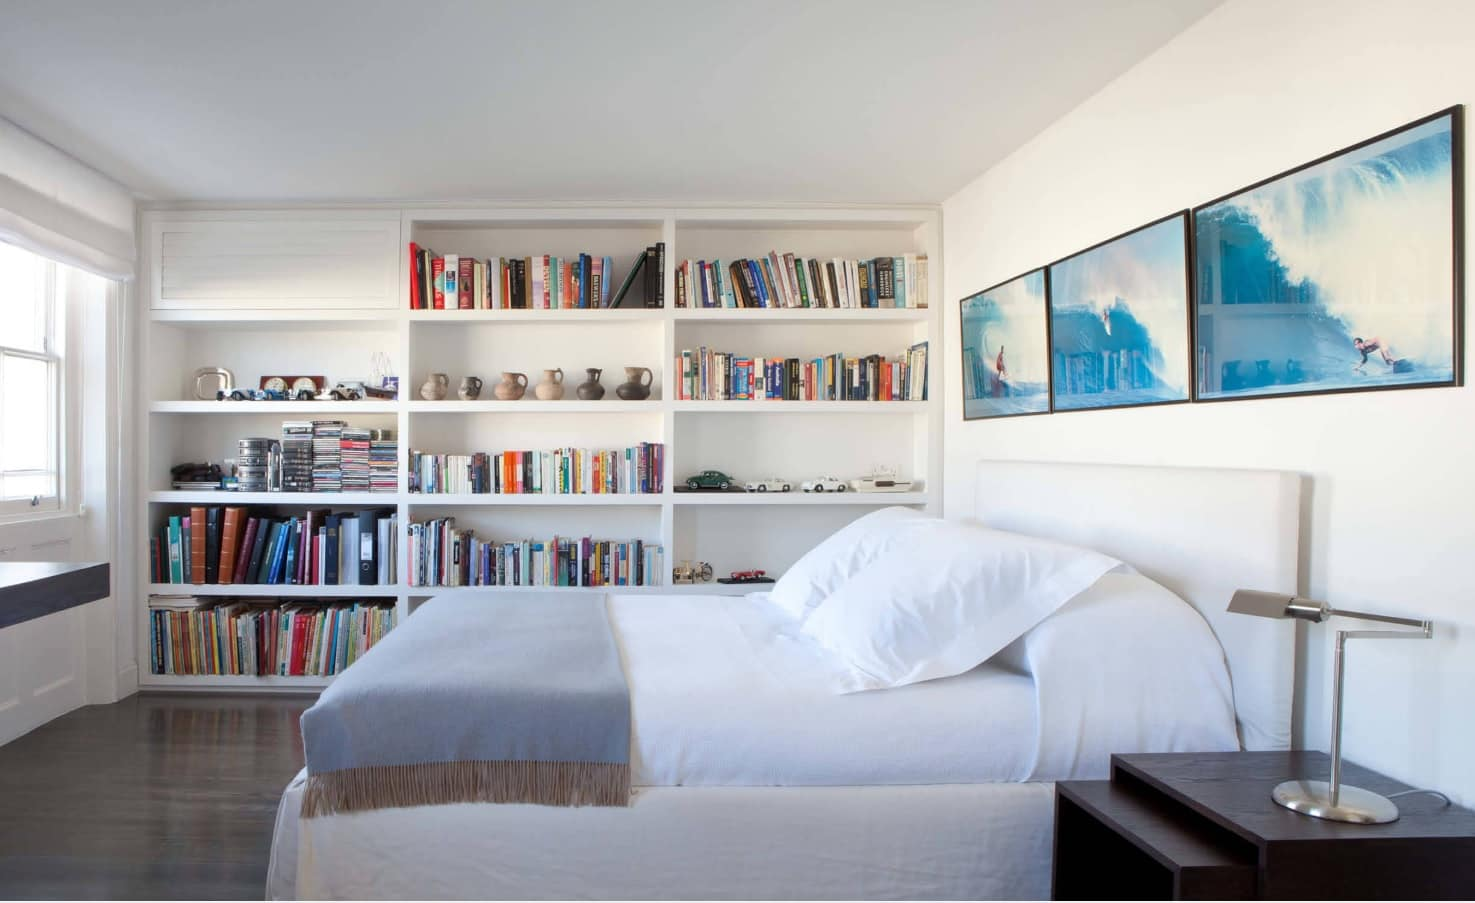 What are the Best Mattresses Suited for Lower Back Pain? Functional casual styled bedroom with shelving